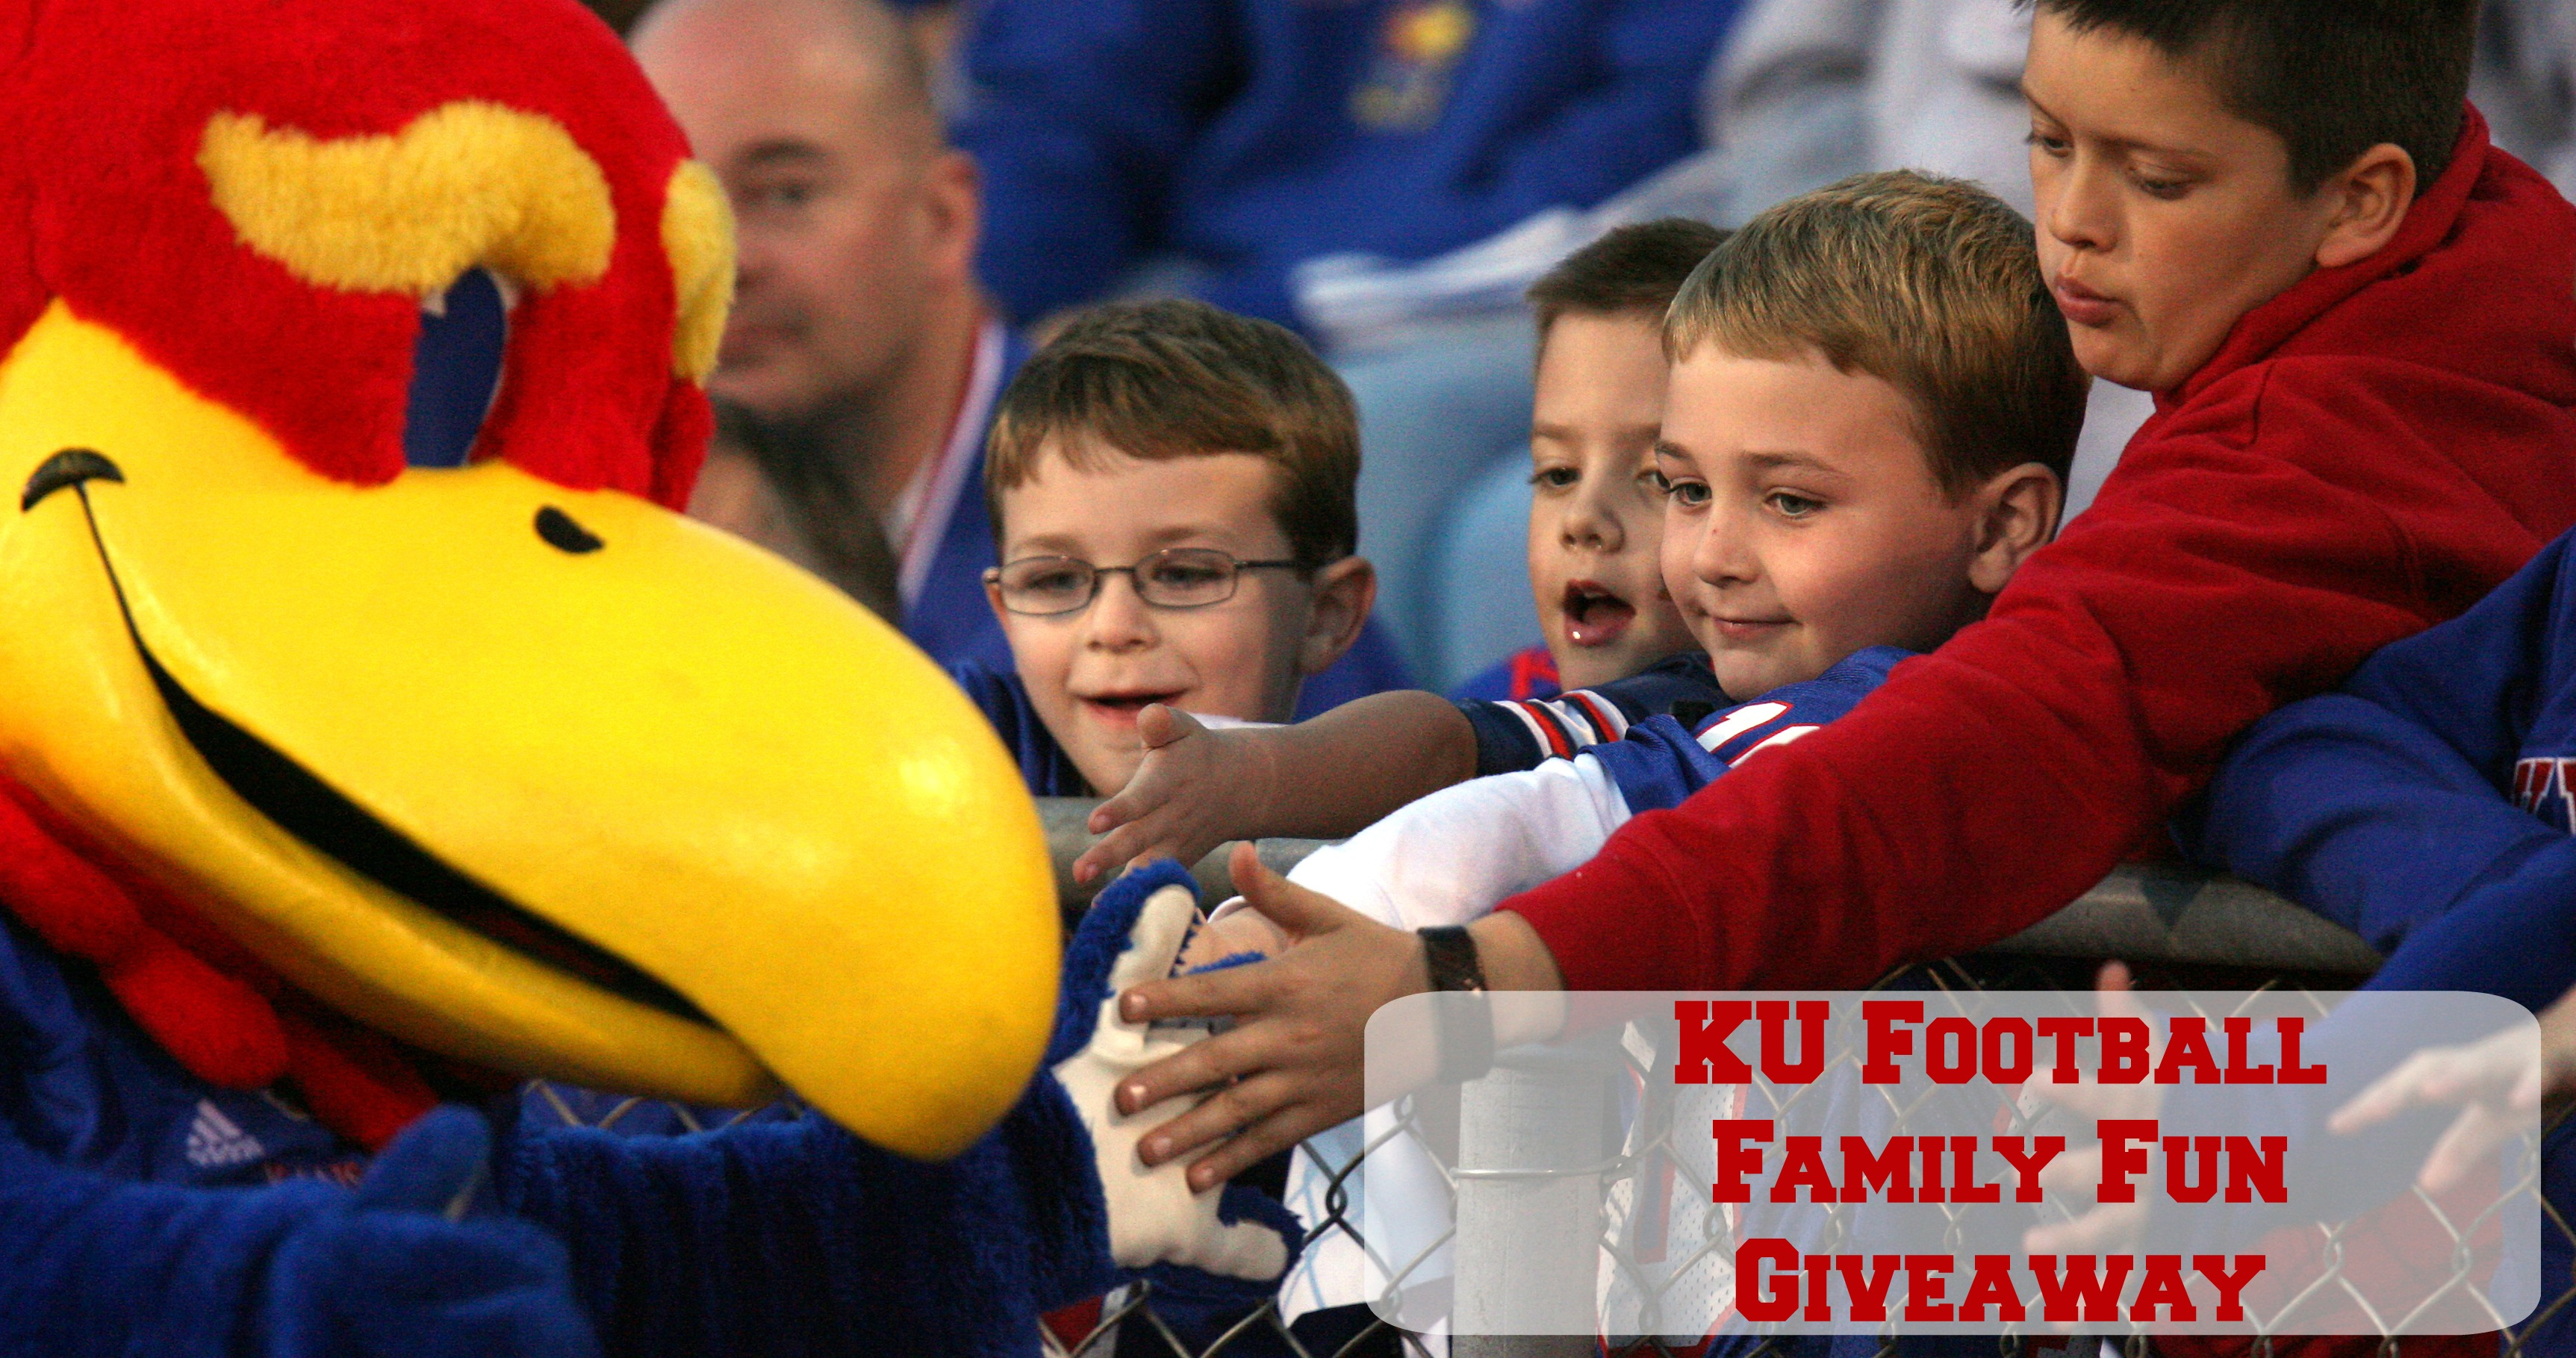 WIN a football family fun pack from KU athletics